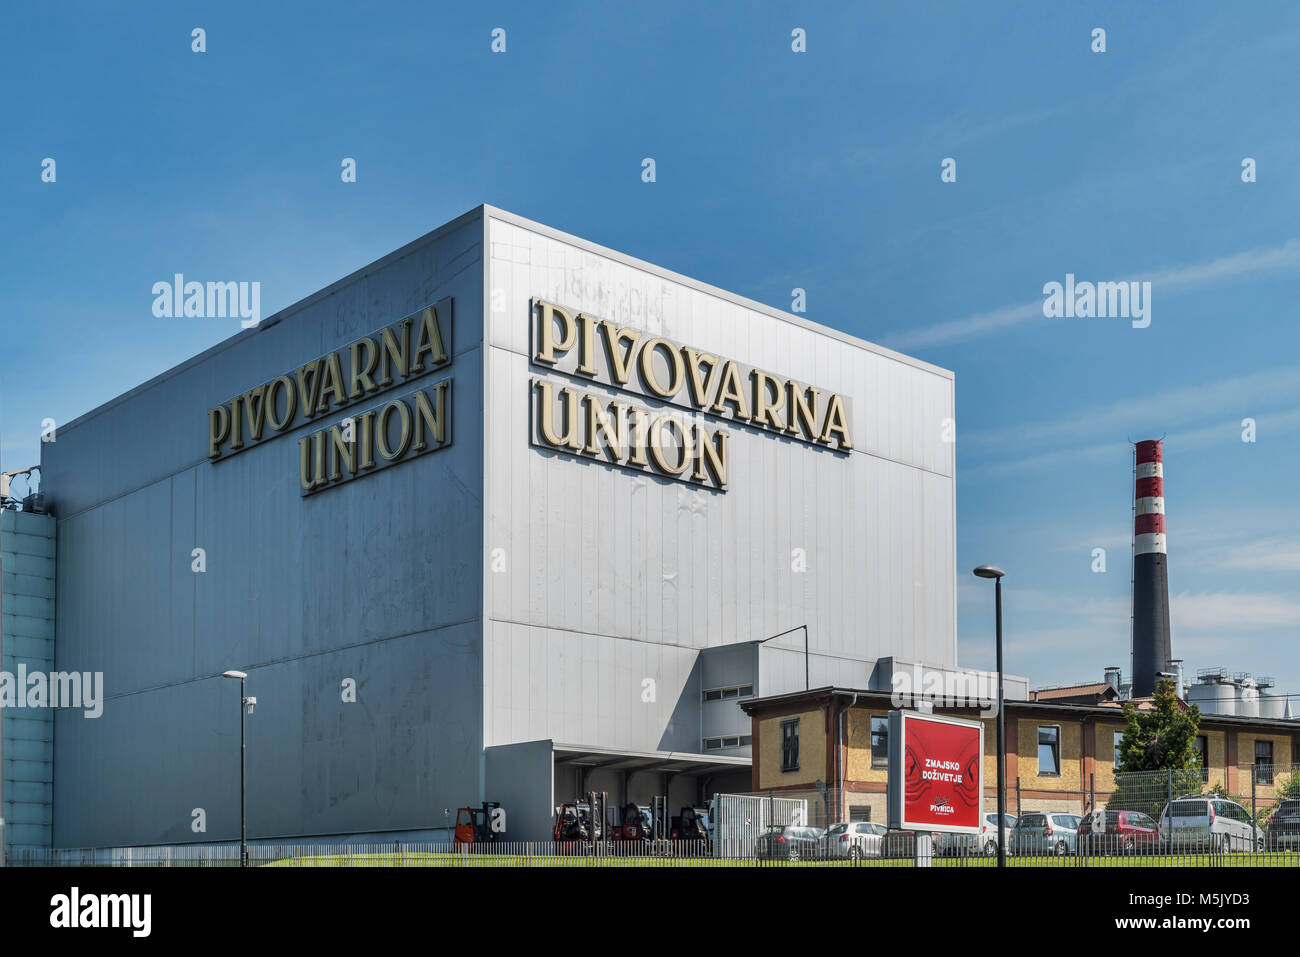 The building of the UNION brewery is located in Ljubljana, the capital of Slovenia, Europe - Stock Image